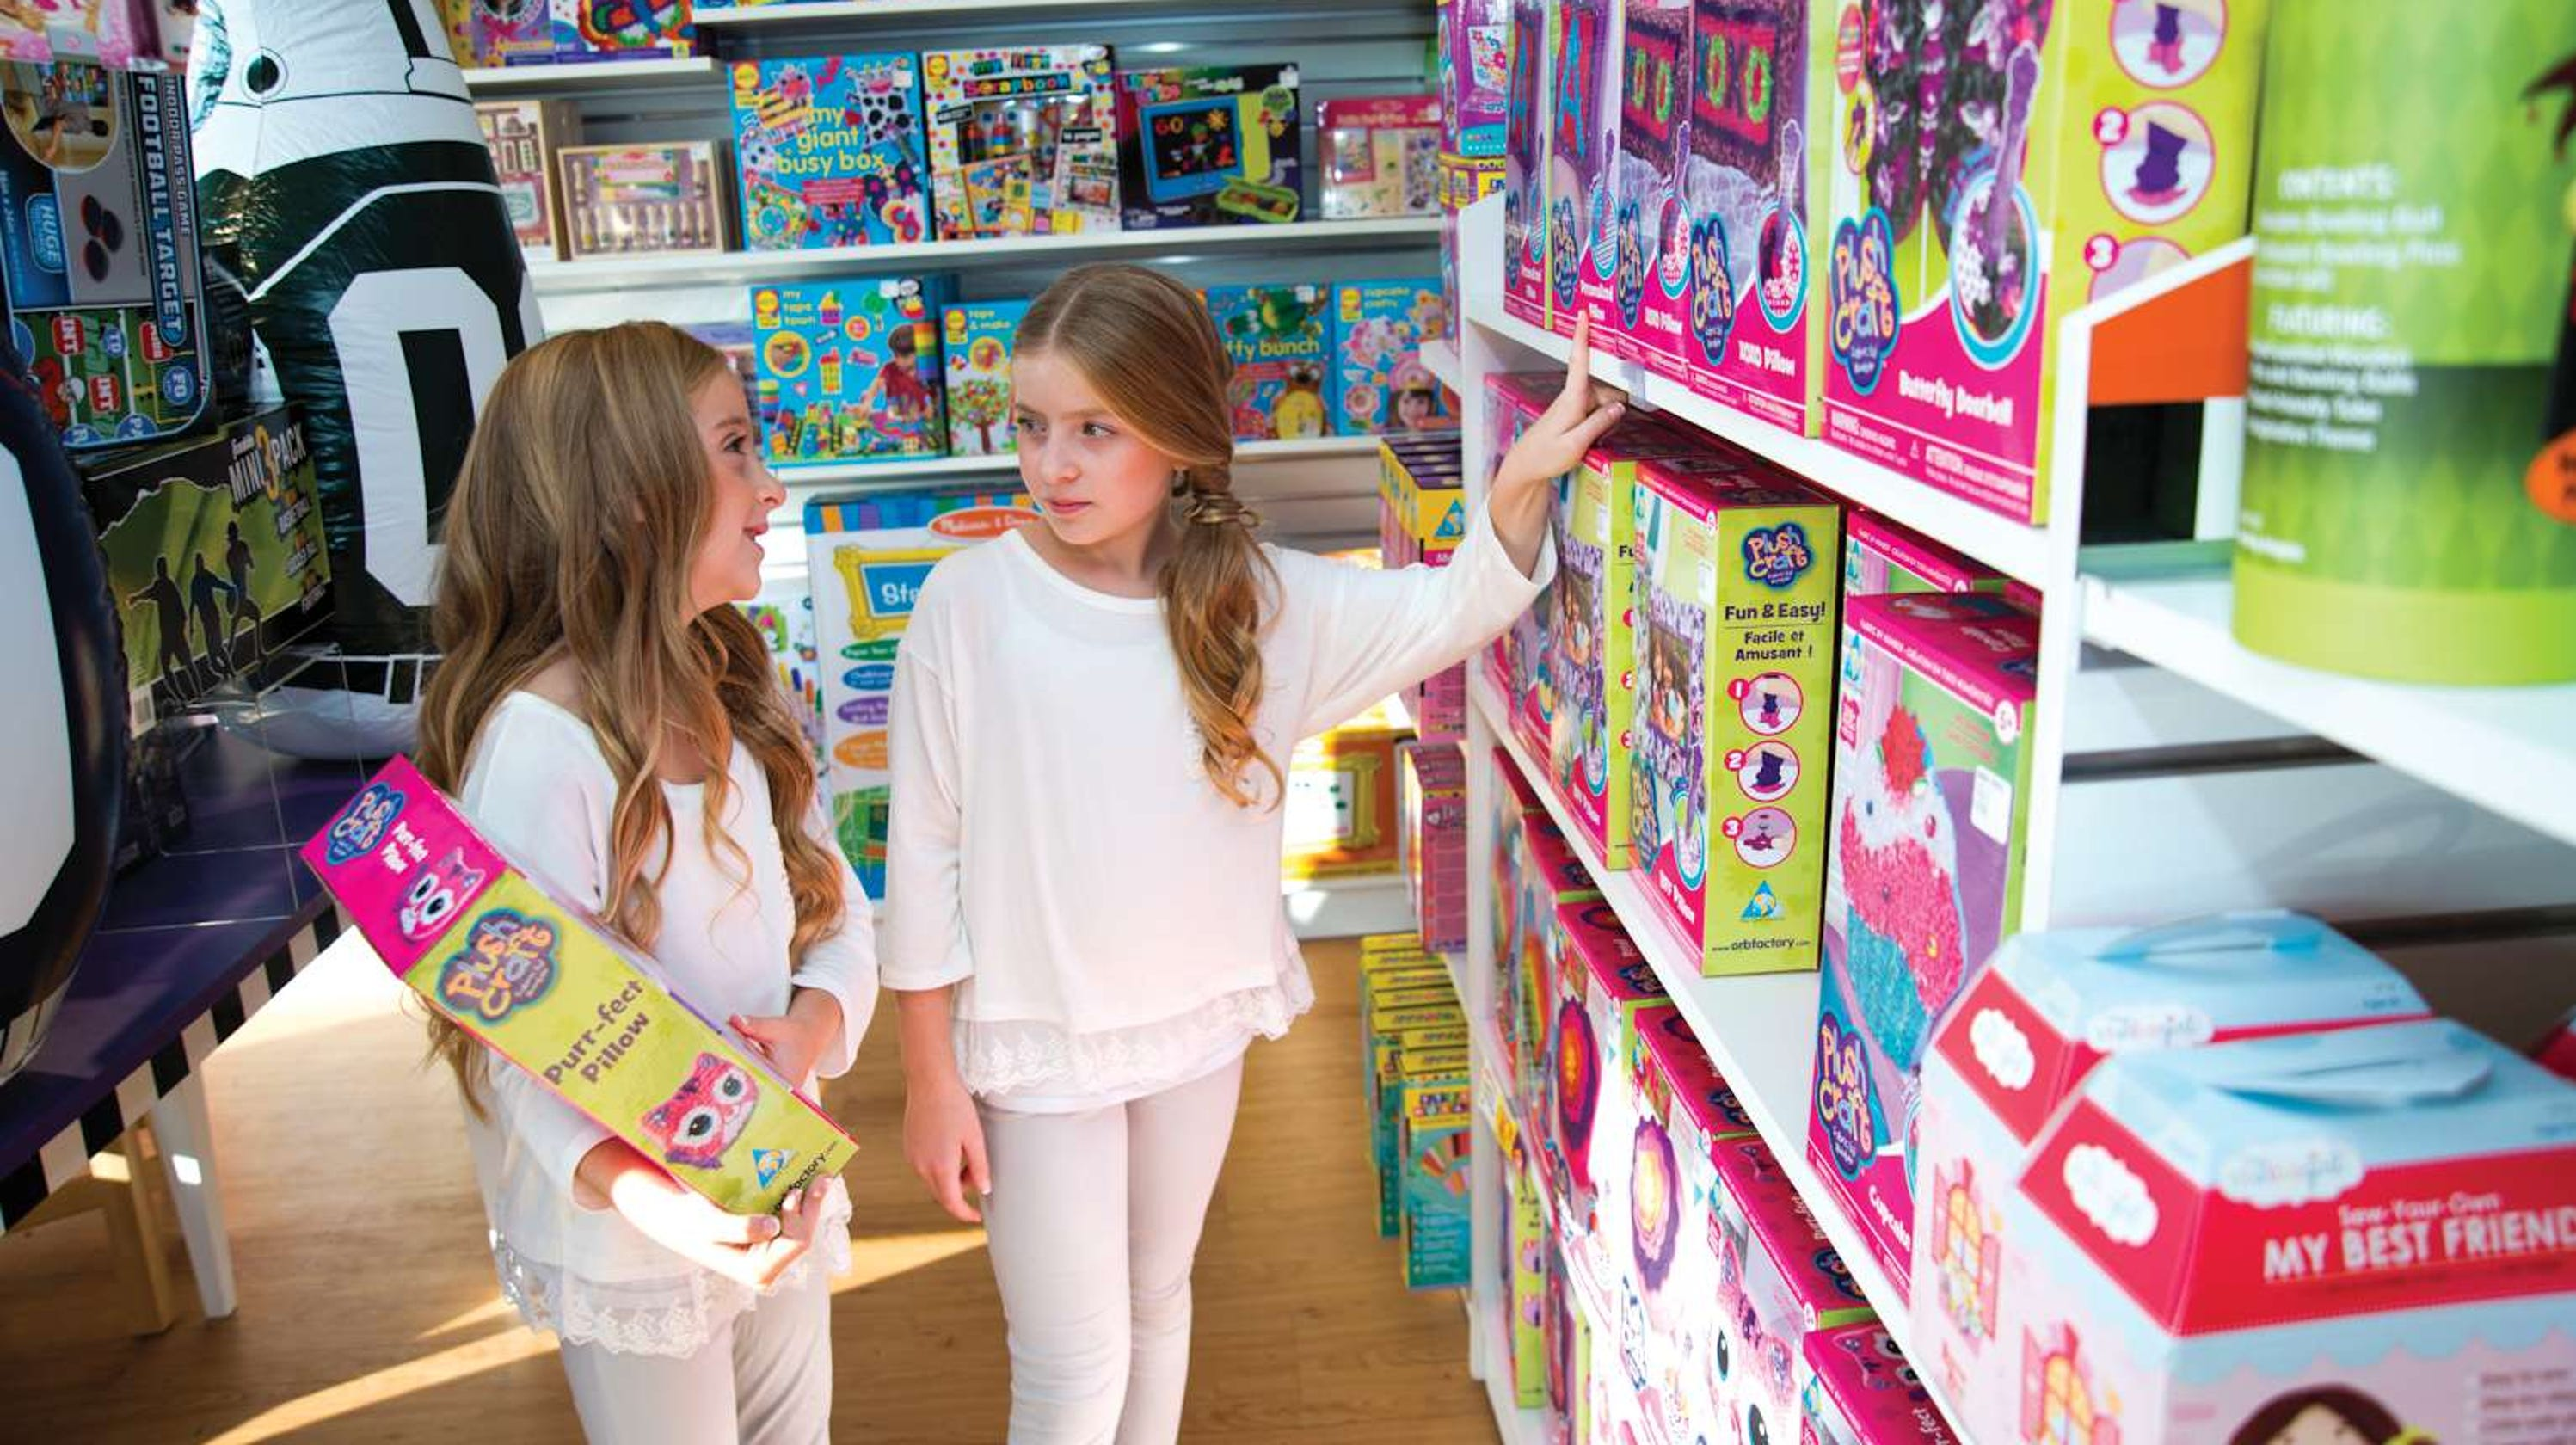 Learning Express toy store in Wayne NJ closes